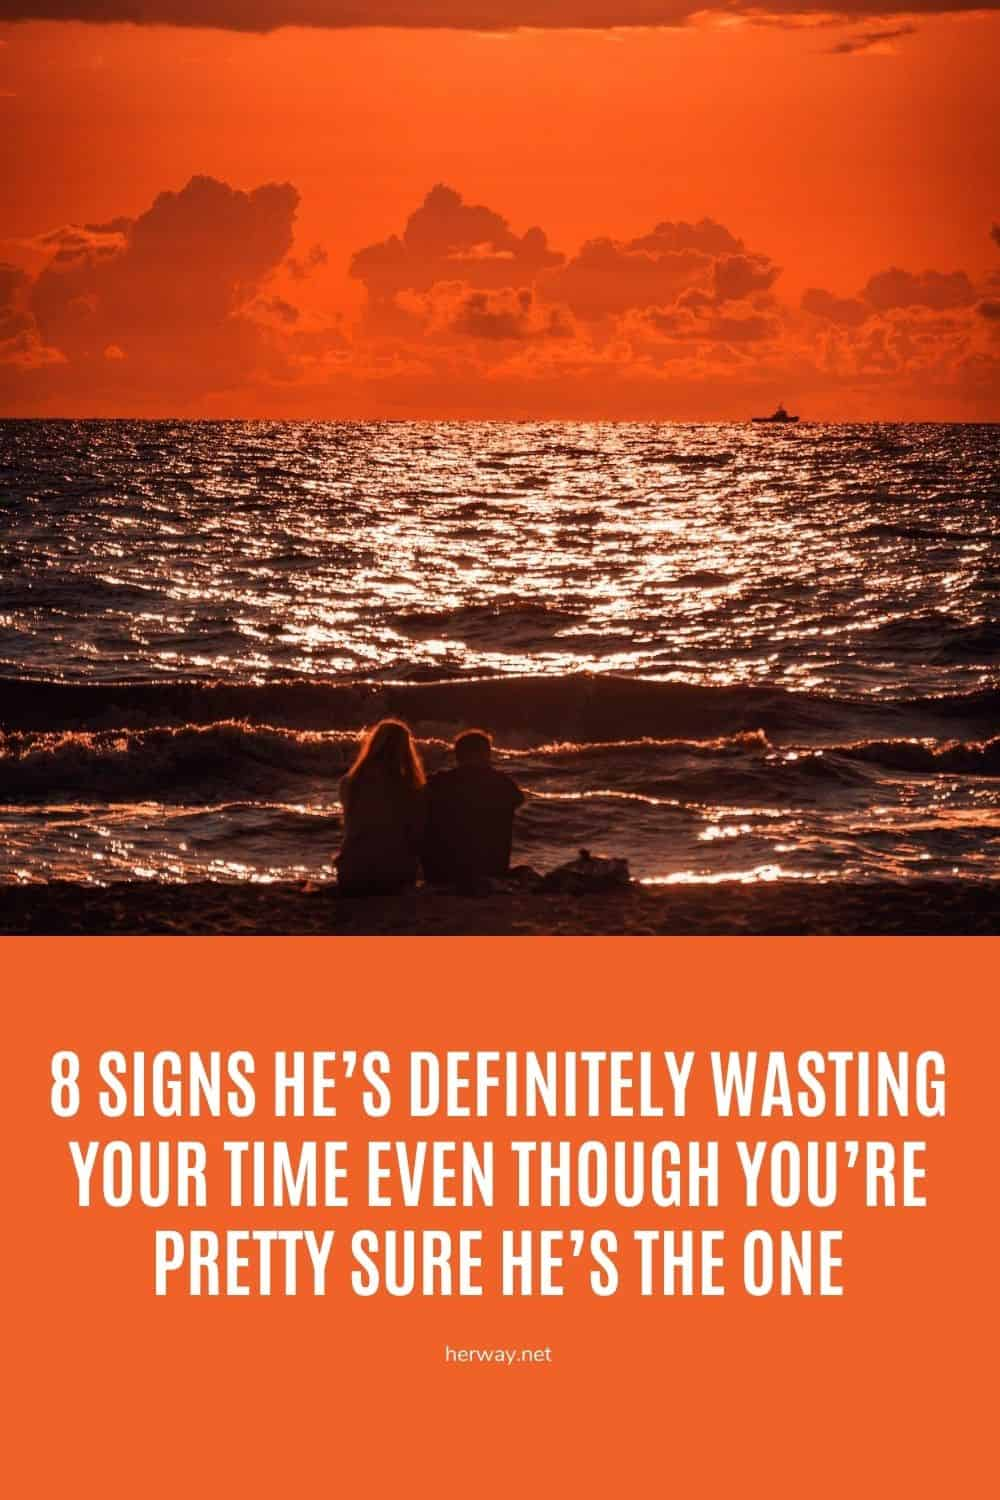 8 Signs He's Definitely Wasting Your Time Even Though You're Pretty Sure He's The One